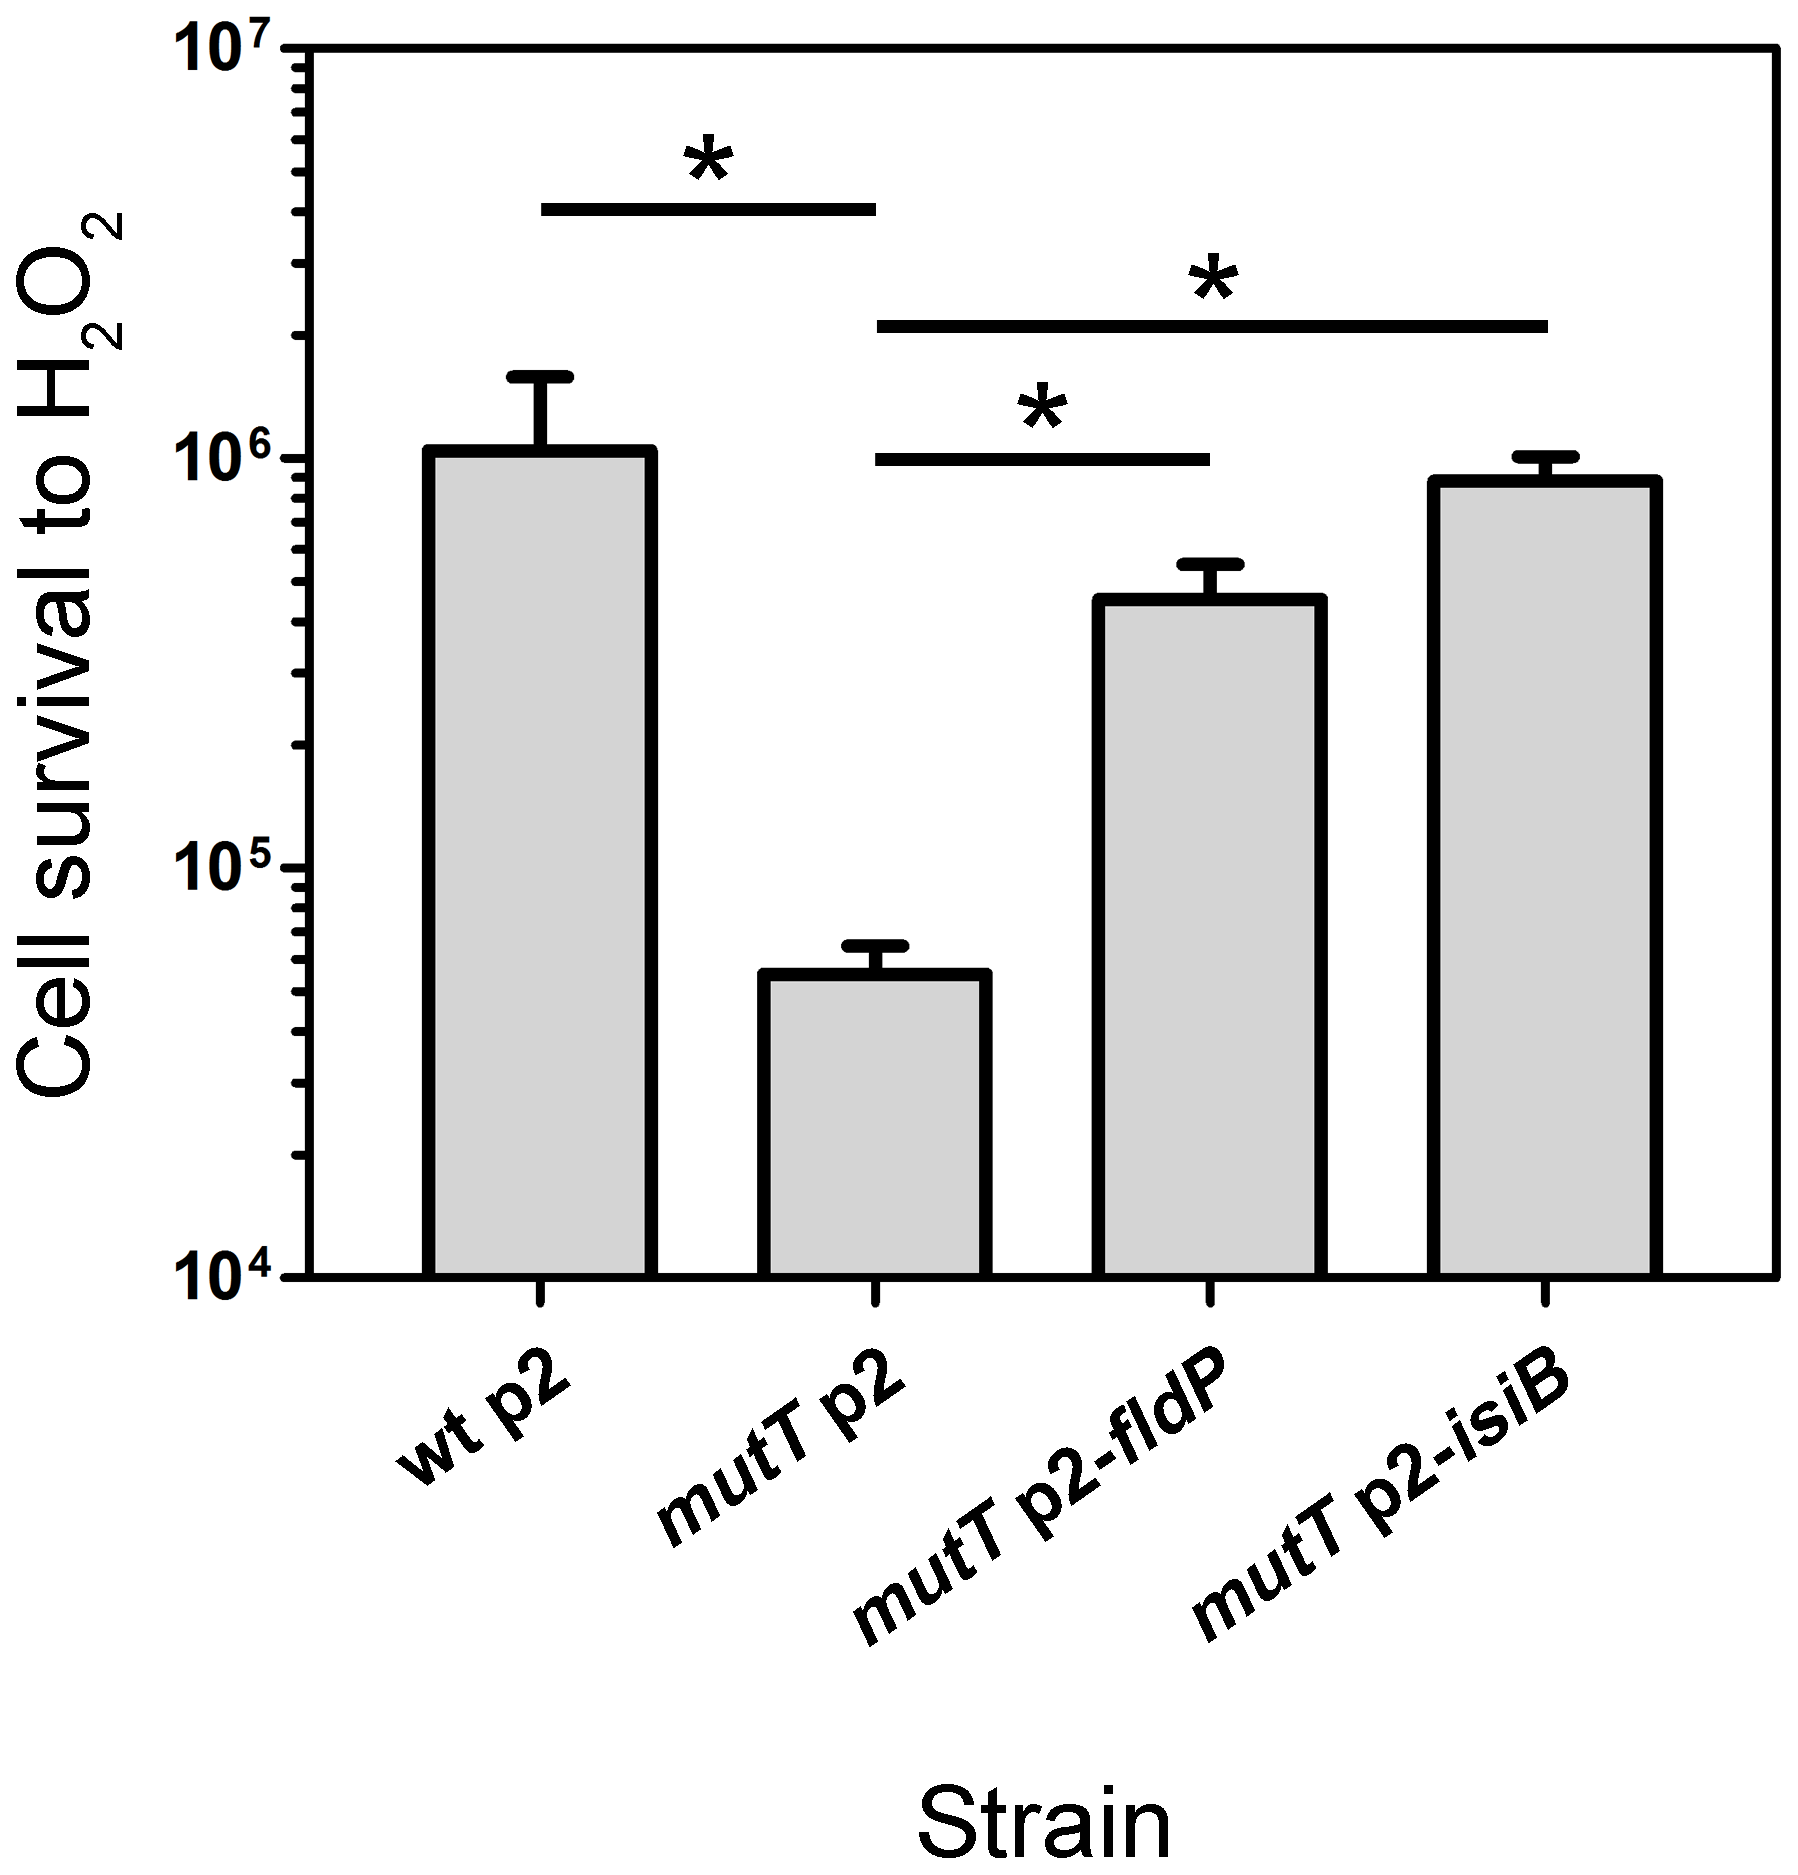 FldP mitigates H<sub>2</sub>O<sub>2</sub>-induced cell death in a <i>mutT</i>-deficient <i>P. aeruginosa</i>.